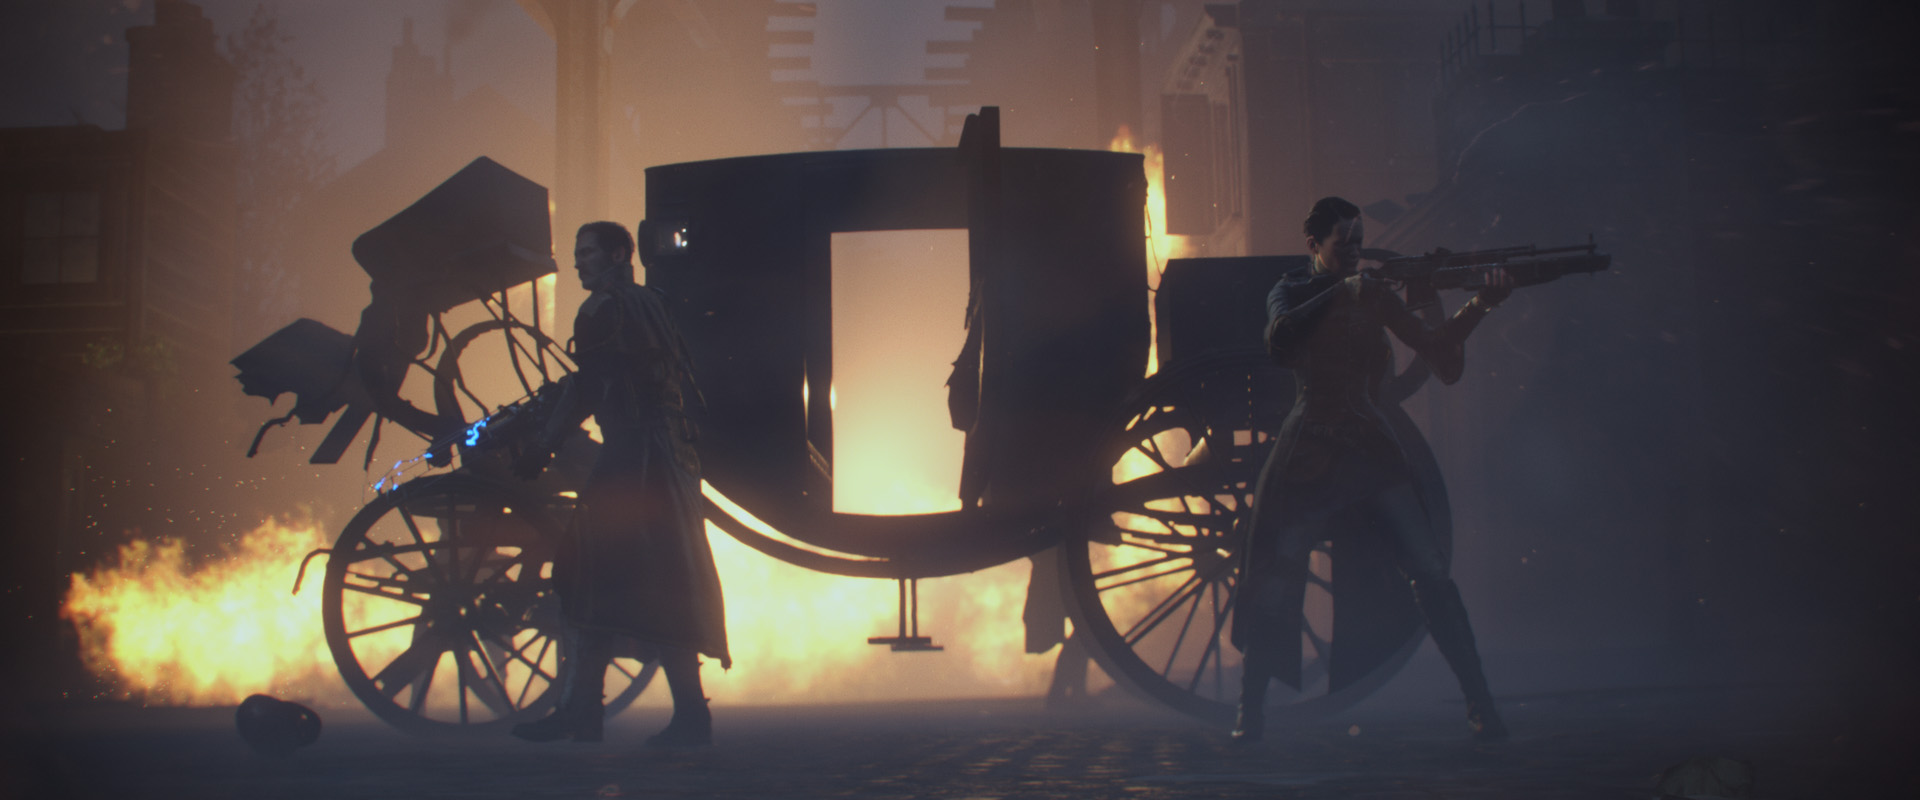 The Order 1886 -  Ready at Dawn - VGProfessional Review (27)